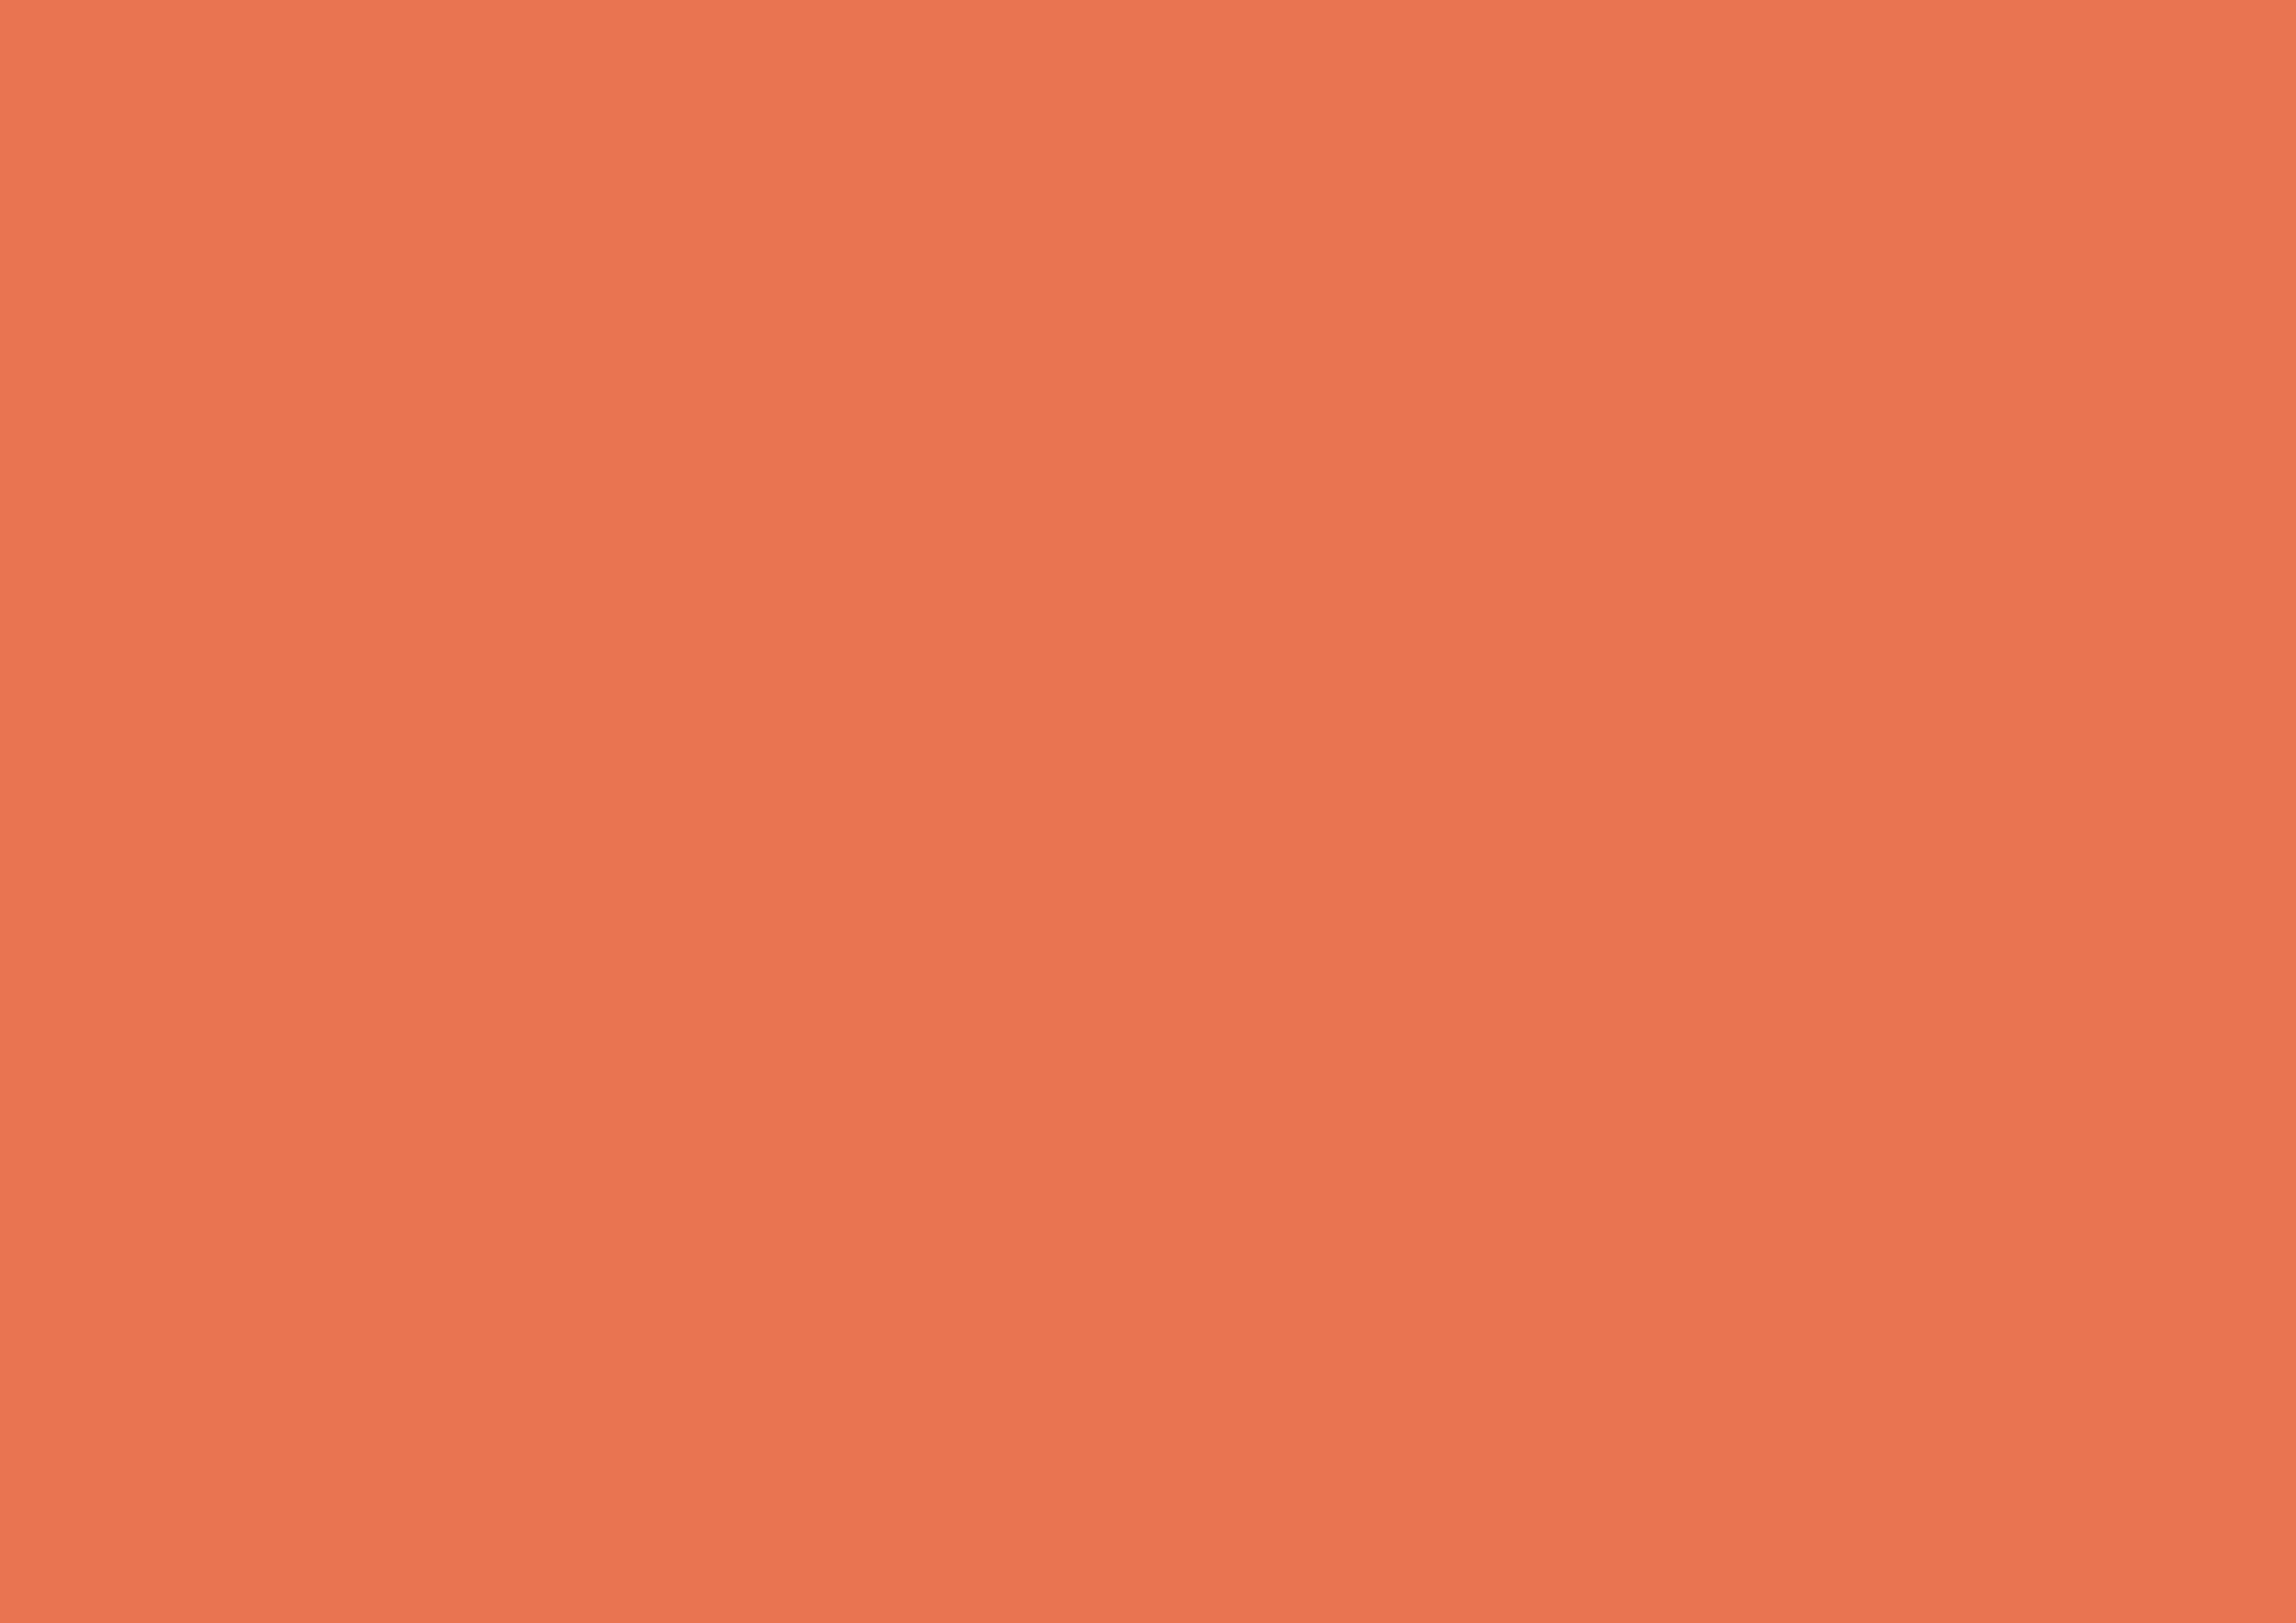 3508x2480 Burnt Sienna Solid Color Background